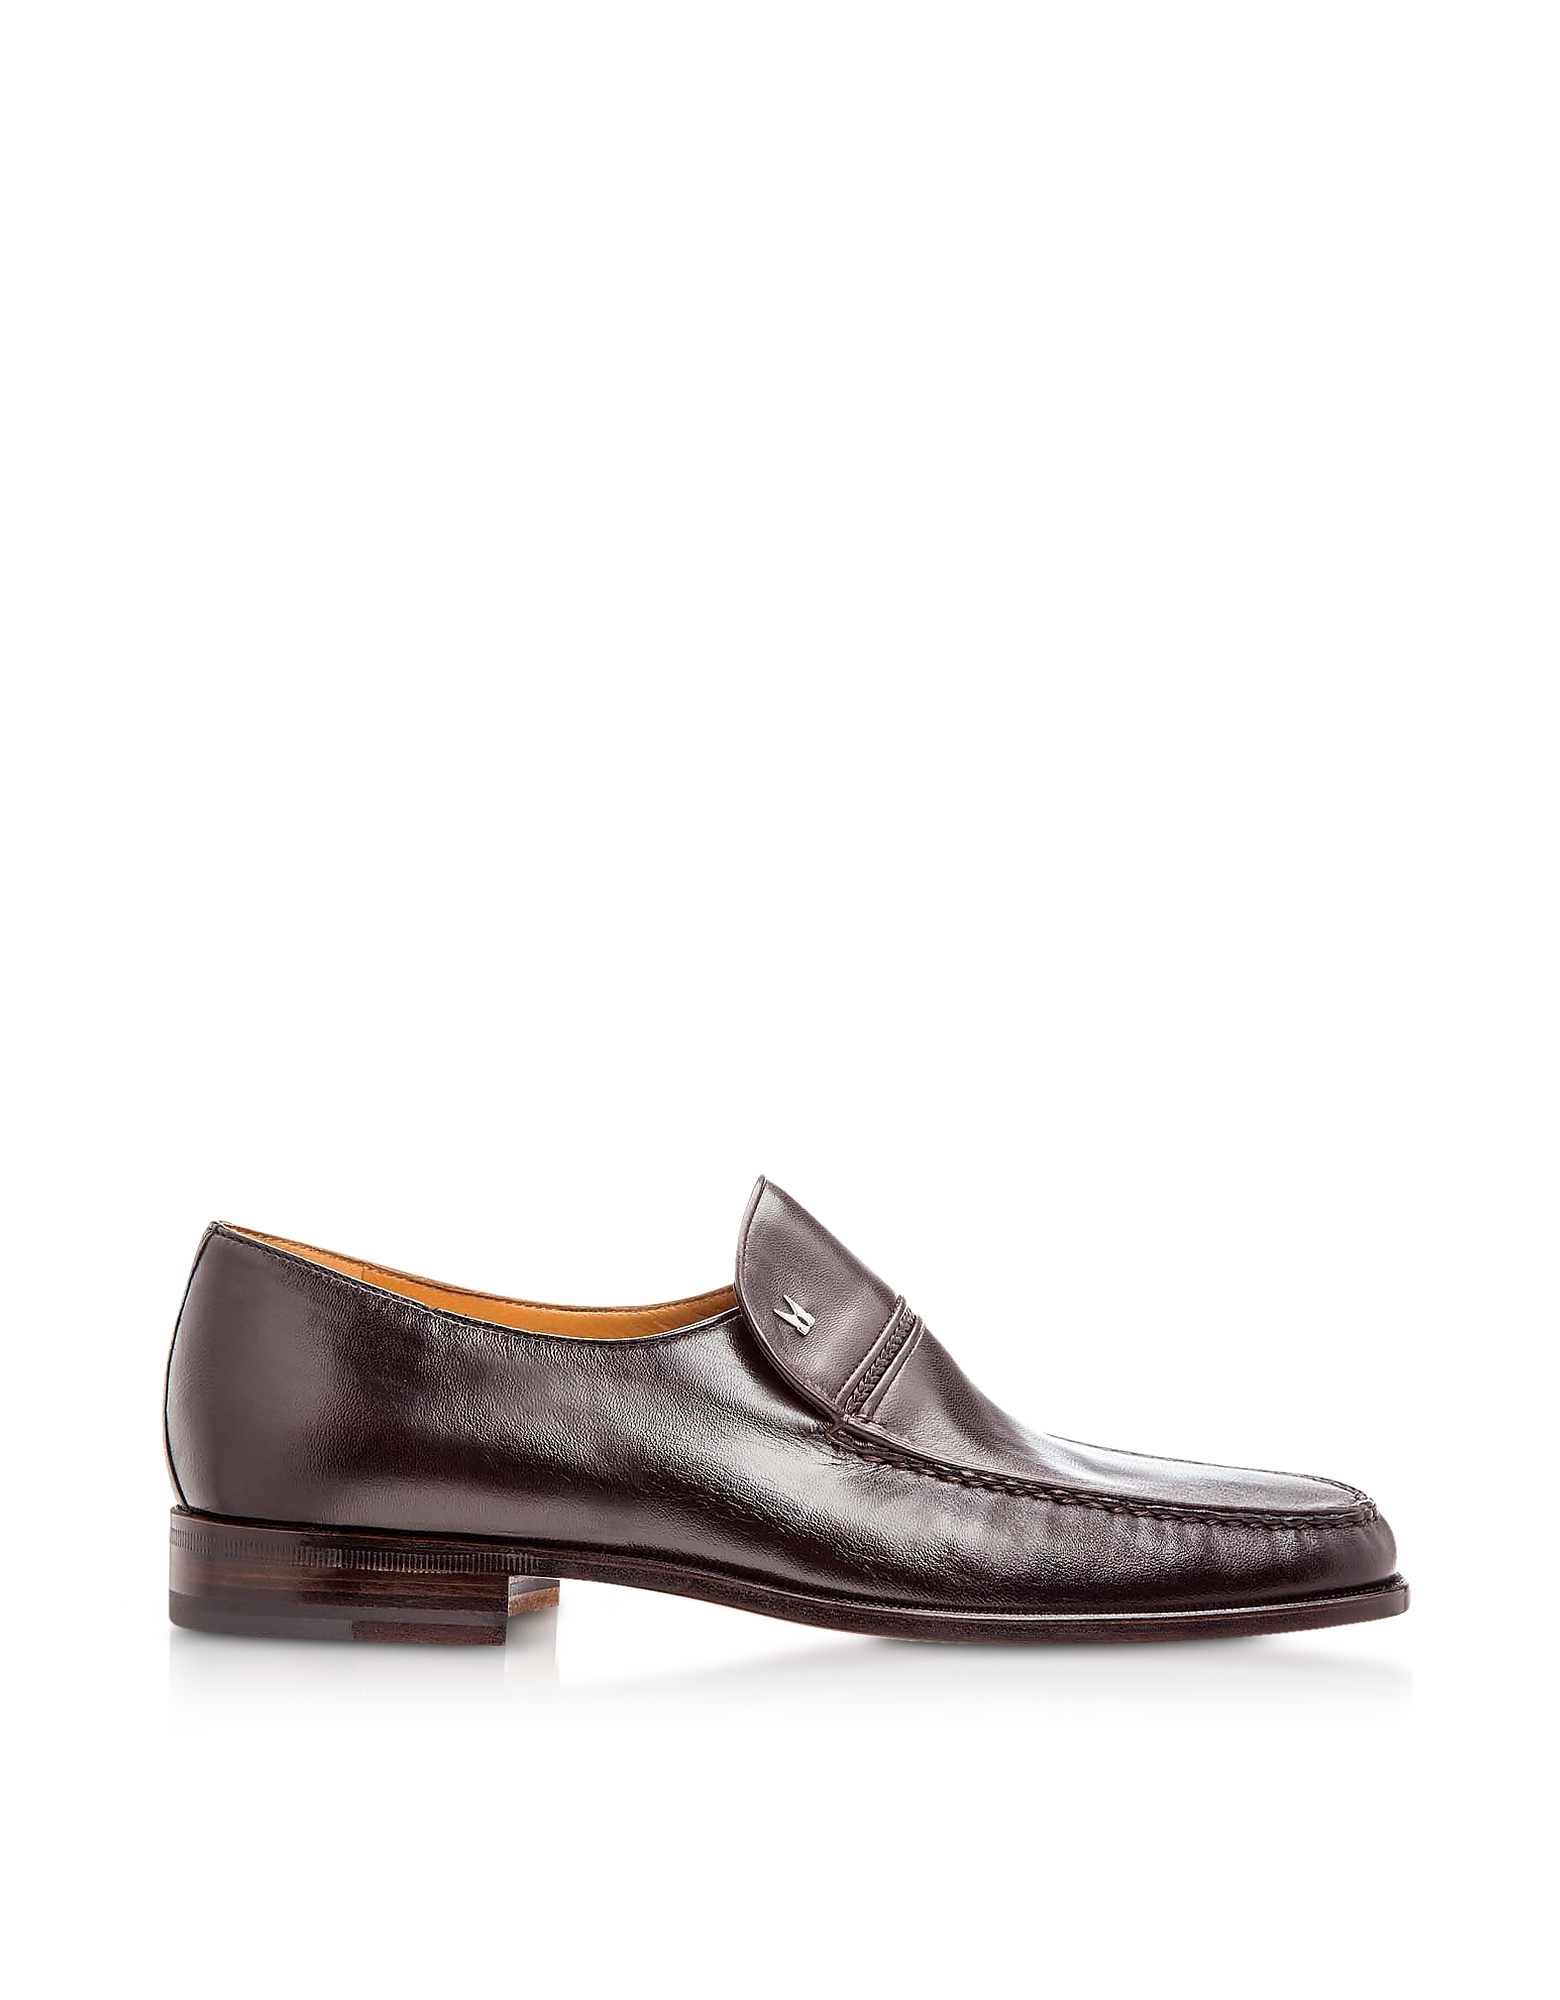 Moreschi Shoes, Bonn Dark Brown Lambskin Loafer Shoes